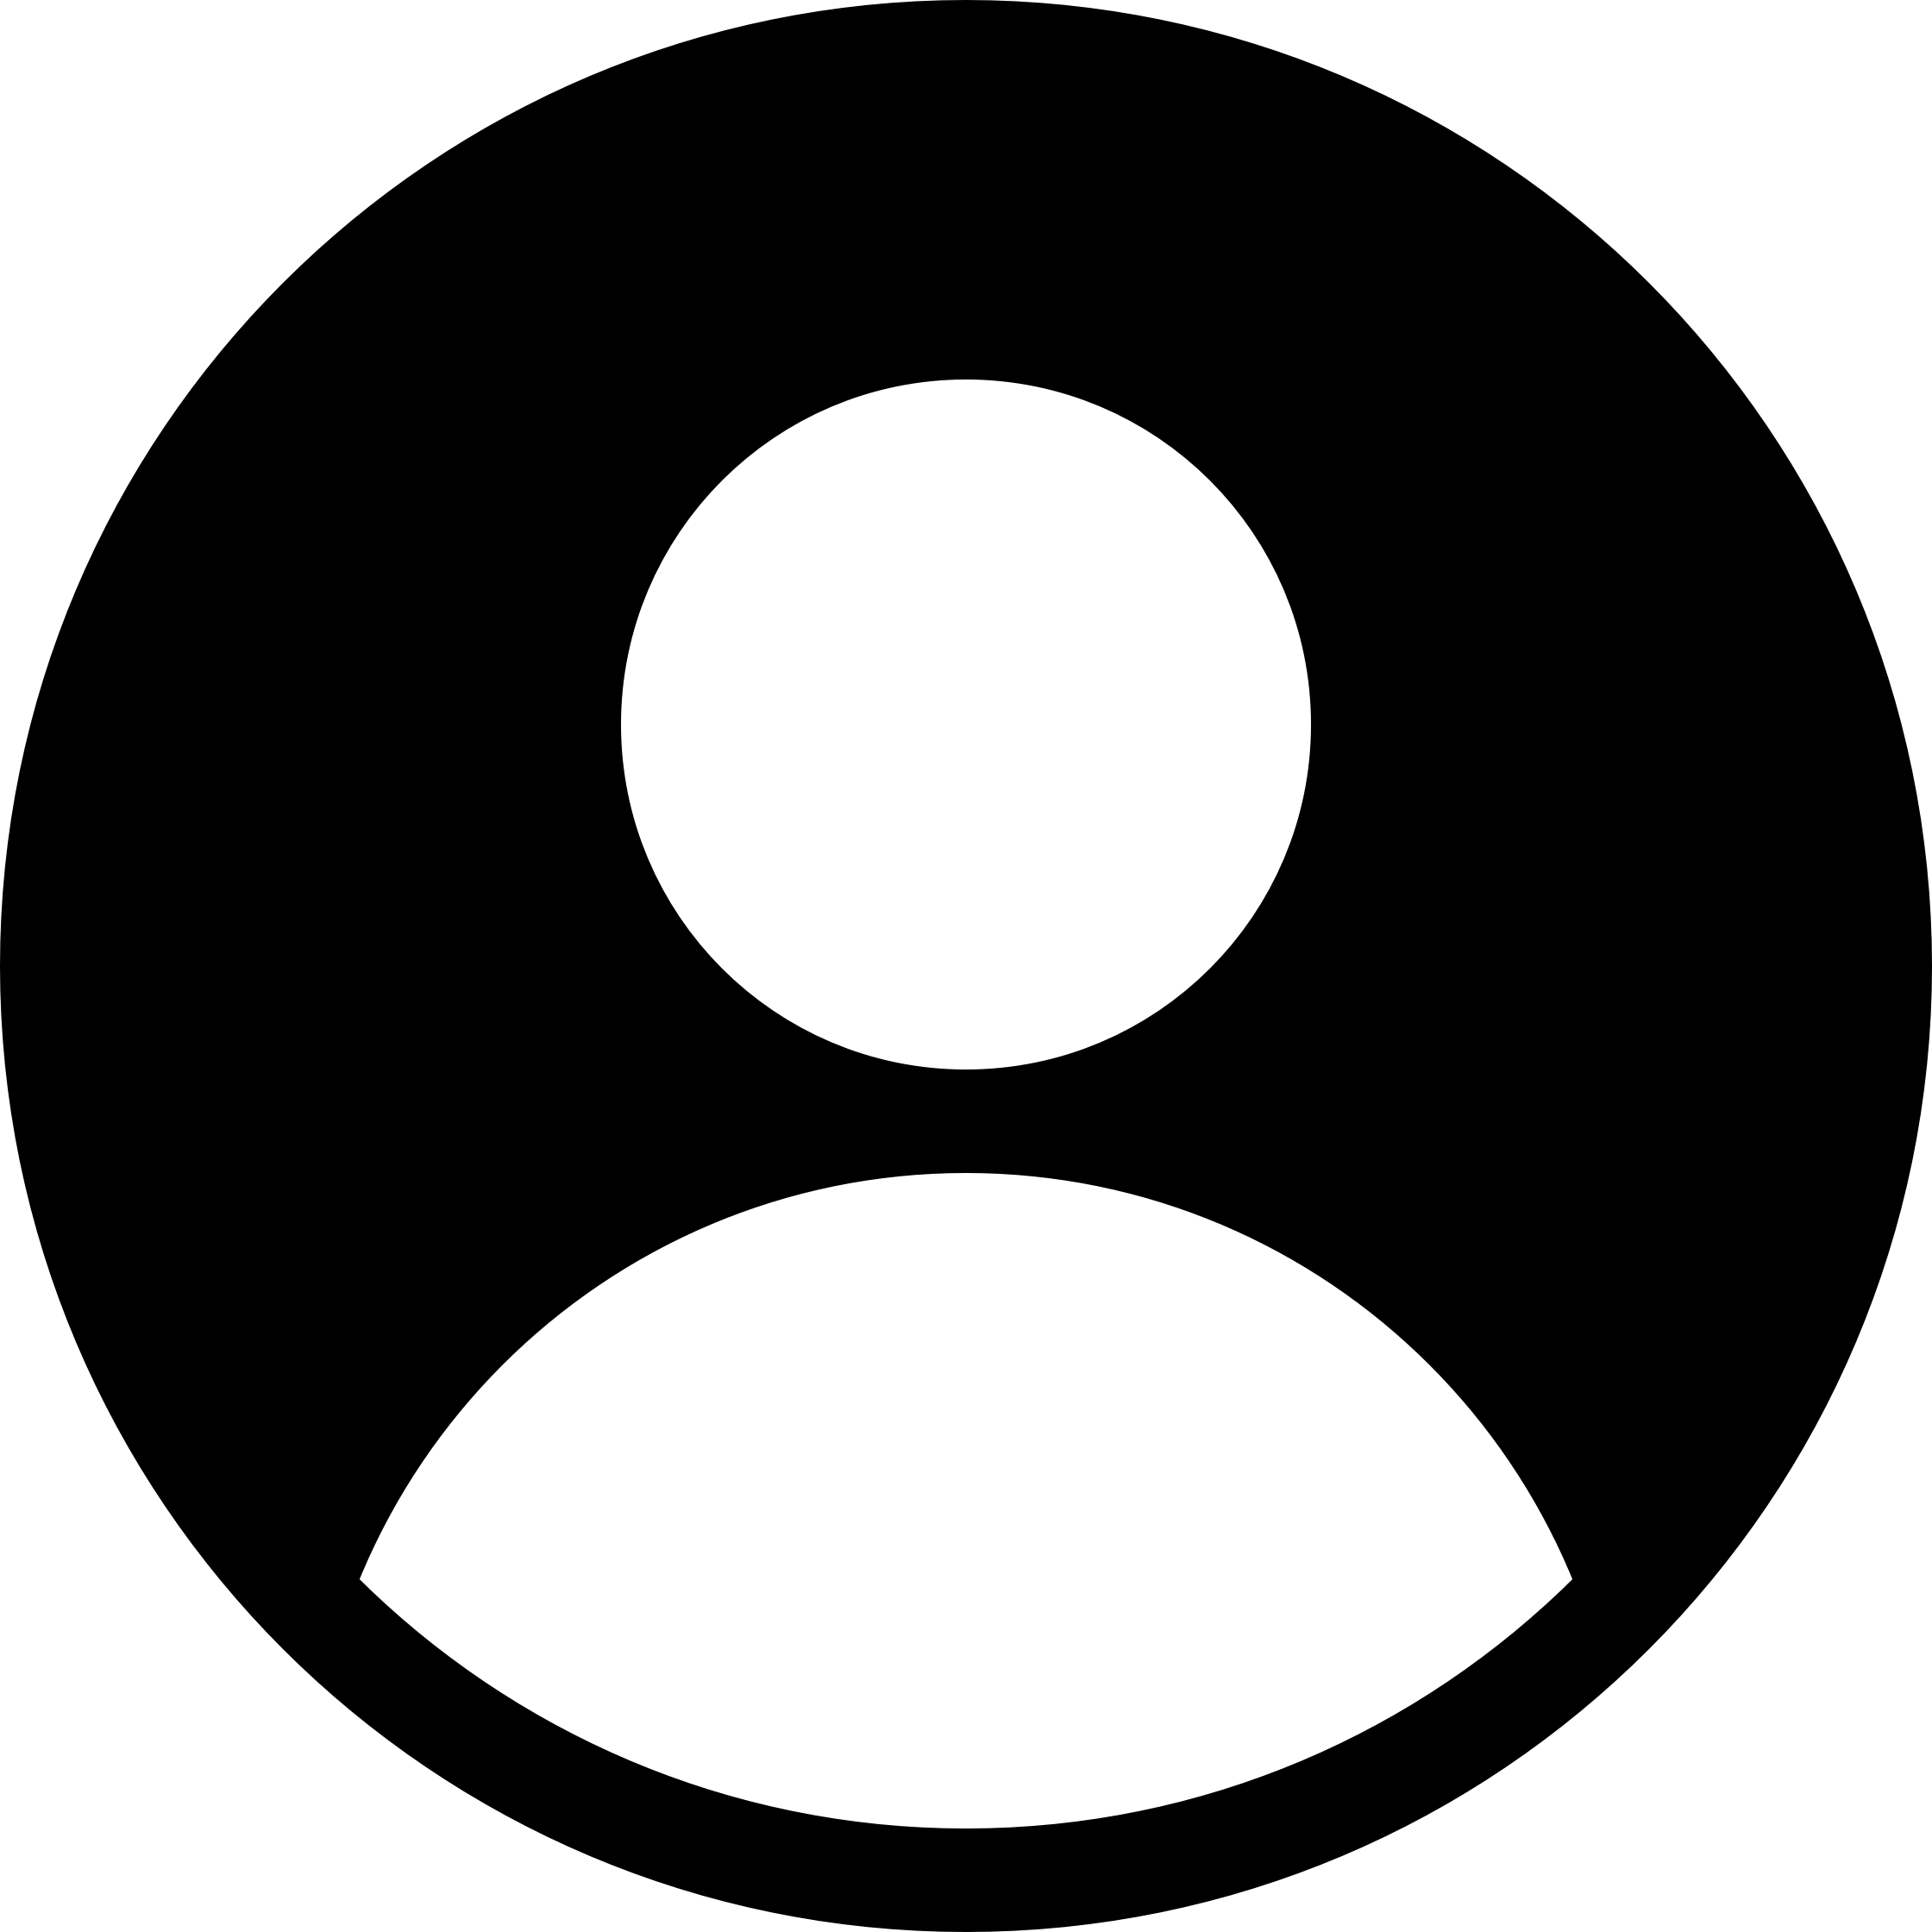 Circled User Icon transparent PNG.